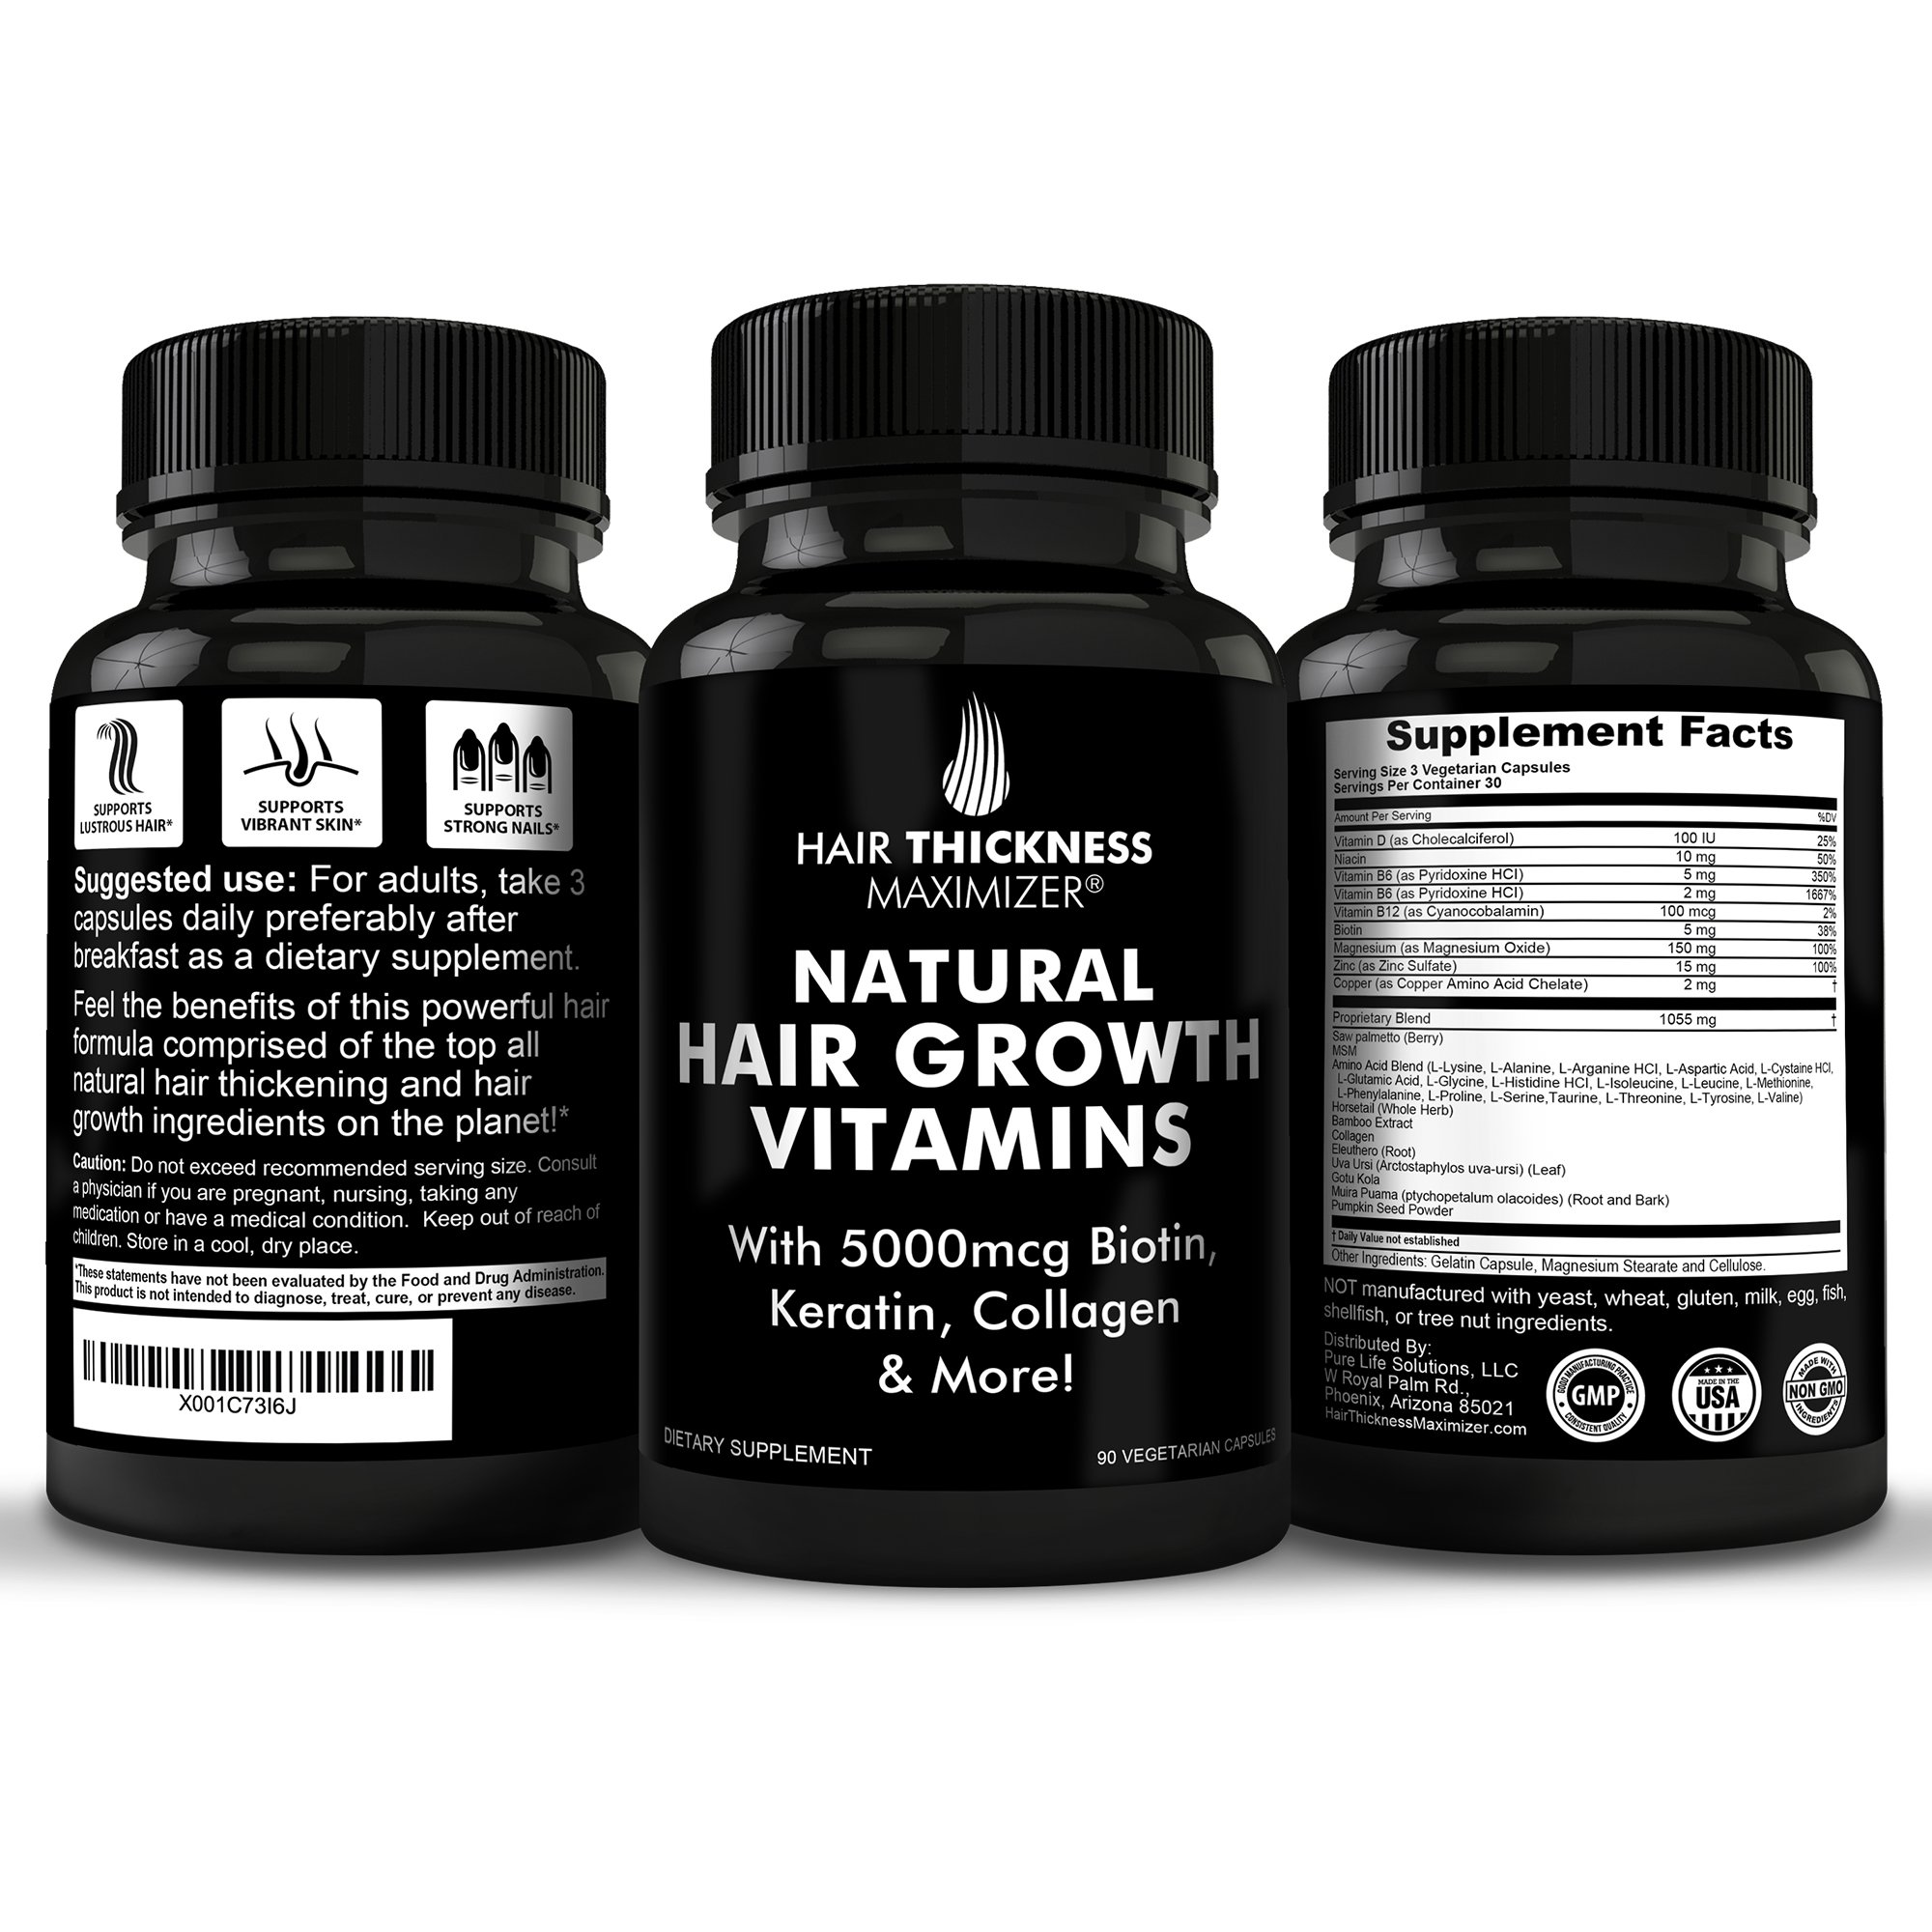 BEST Hair Growth Vitamins GUARANTEED. Stop Hair Loss NOW by Hair Thickness Maximizer. Natural Hair Growth Vitamins for Stronger, Thicker Hair. MADE IN USA. SAFE Vegetarian | With Biotin, Horsetail Ext by Hair Thickness Maximizer (Image #2)